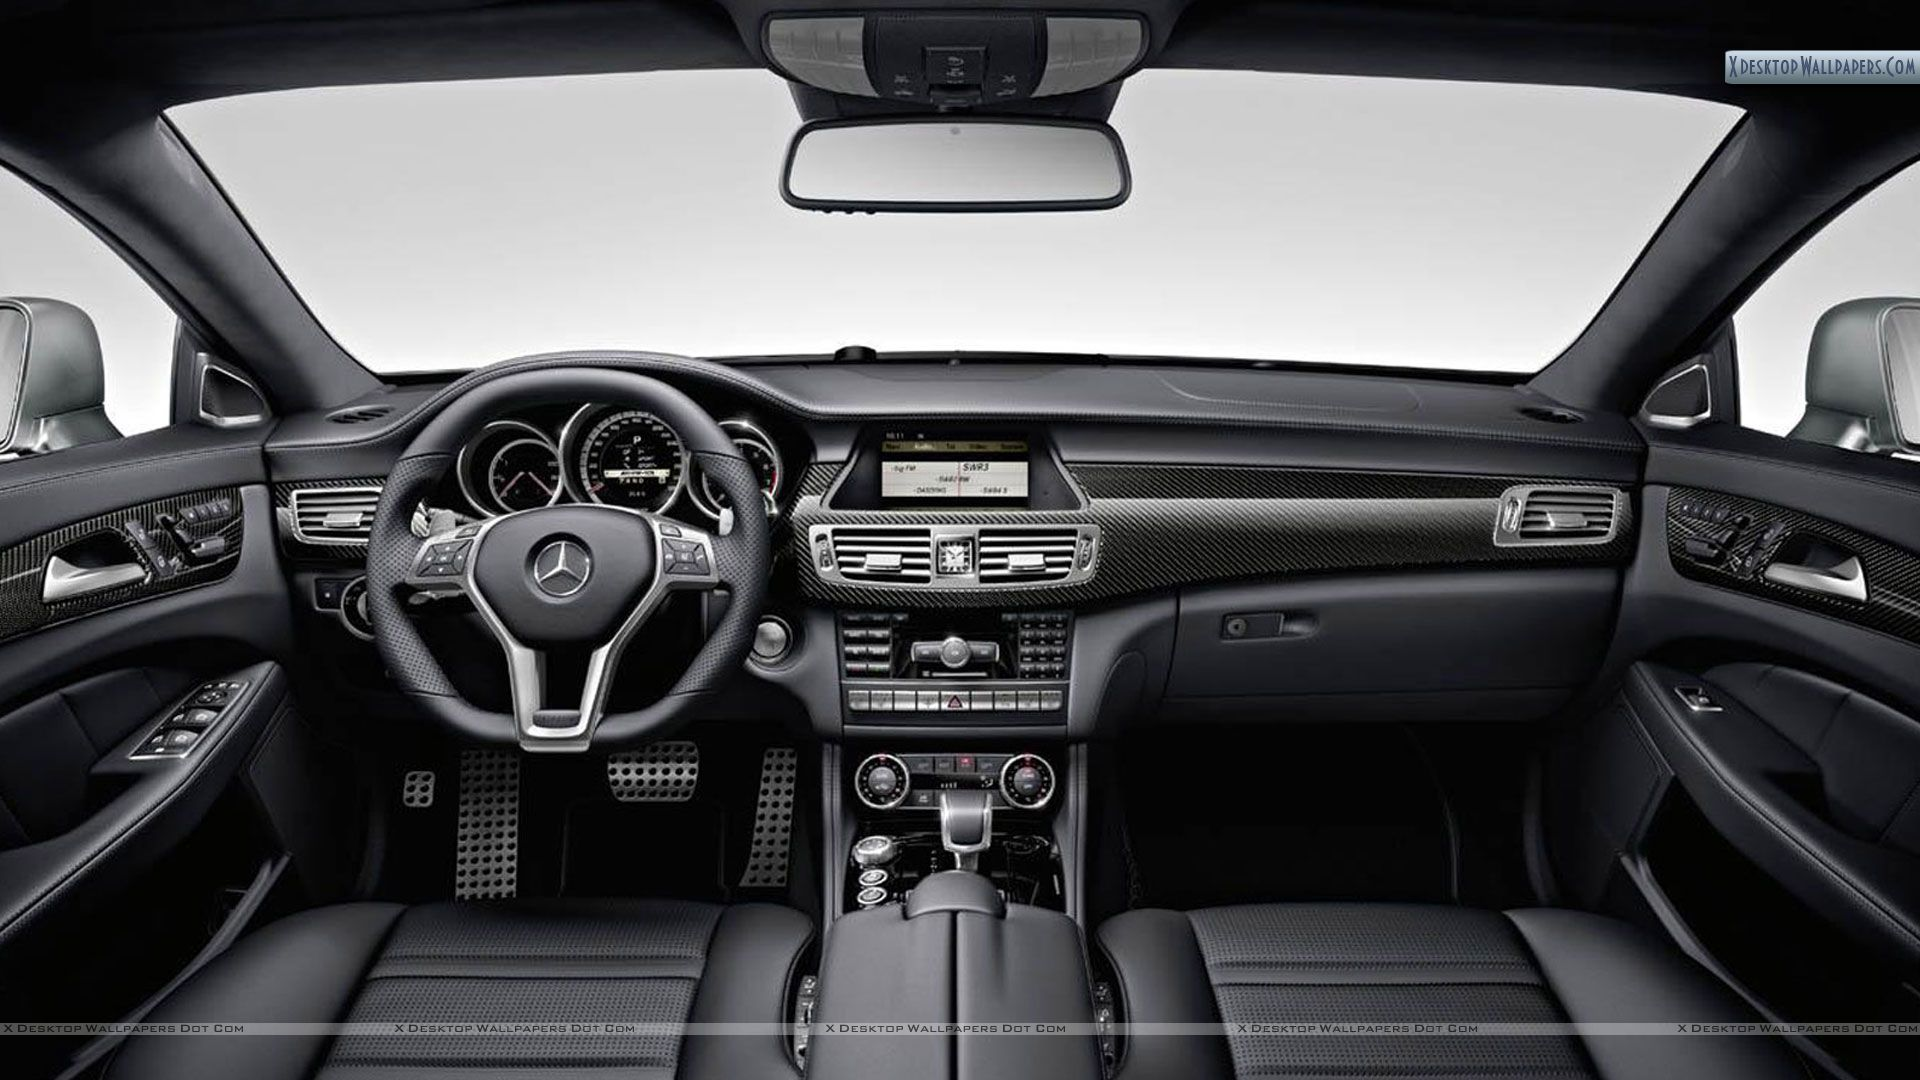 2012 mercedes benz cls63 amg interior shoot wallpaper for Mercedes benz inside view